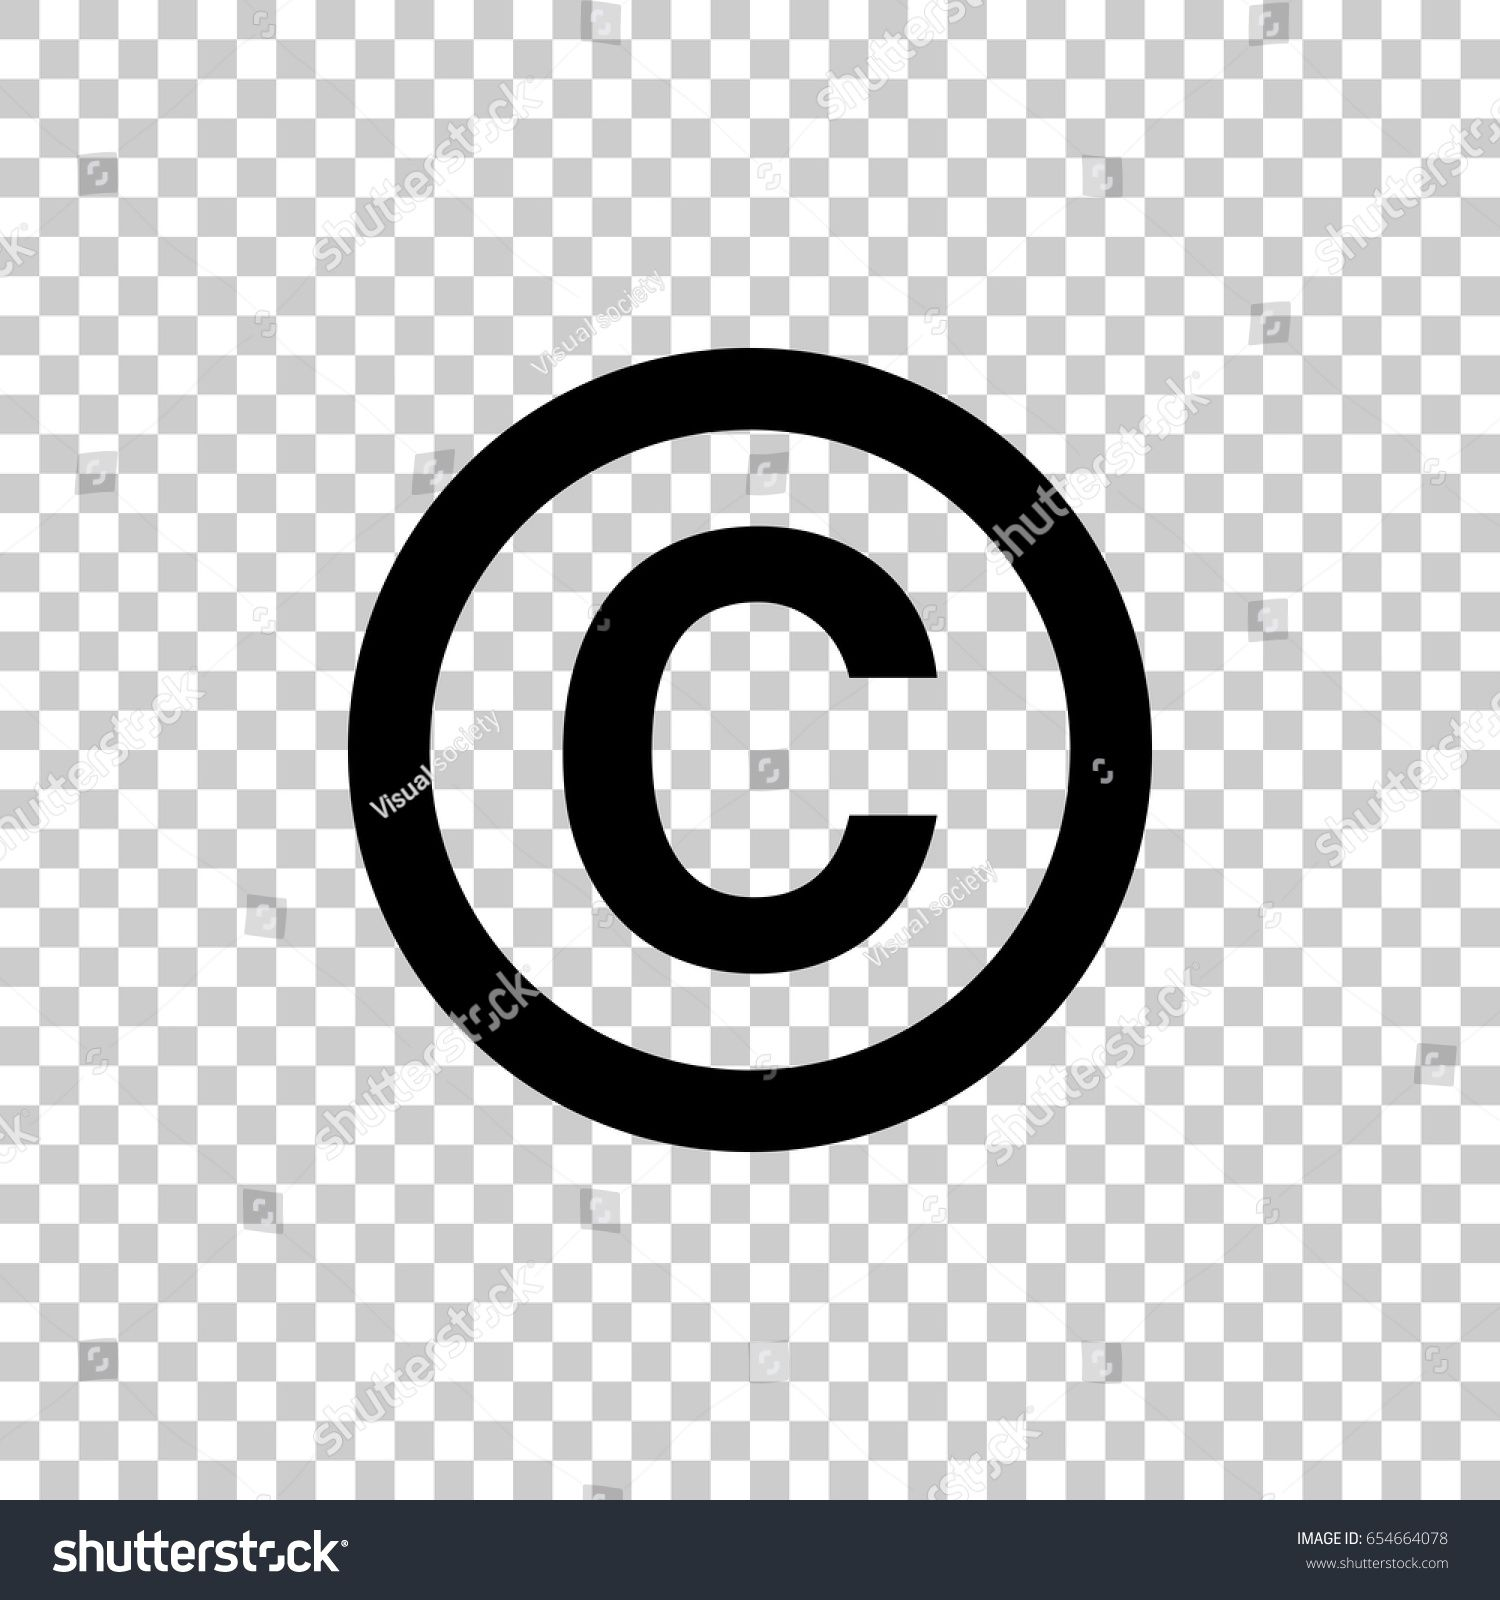 Copyright Symbol Isolated On Transparent Background Black Symbol For Your Design Vector Illustration Easy In 2020 Transparent Background Symbols Forest Illustration